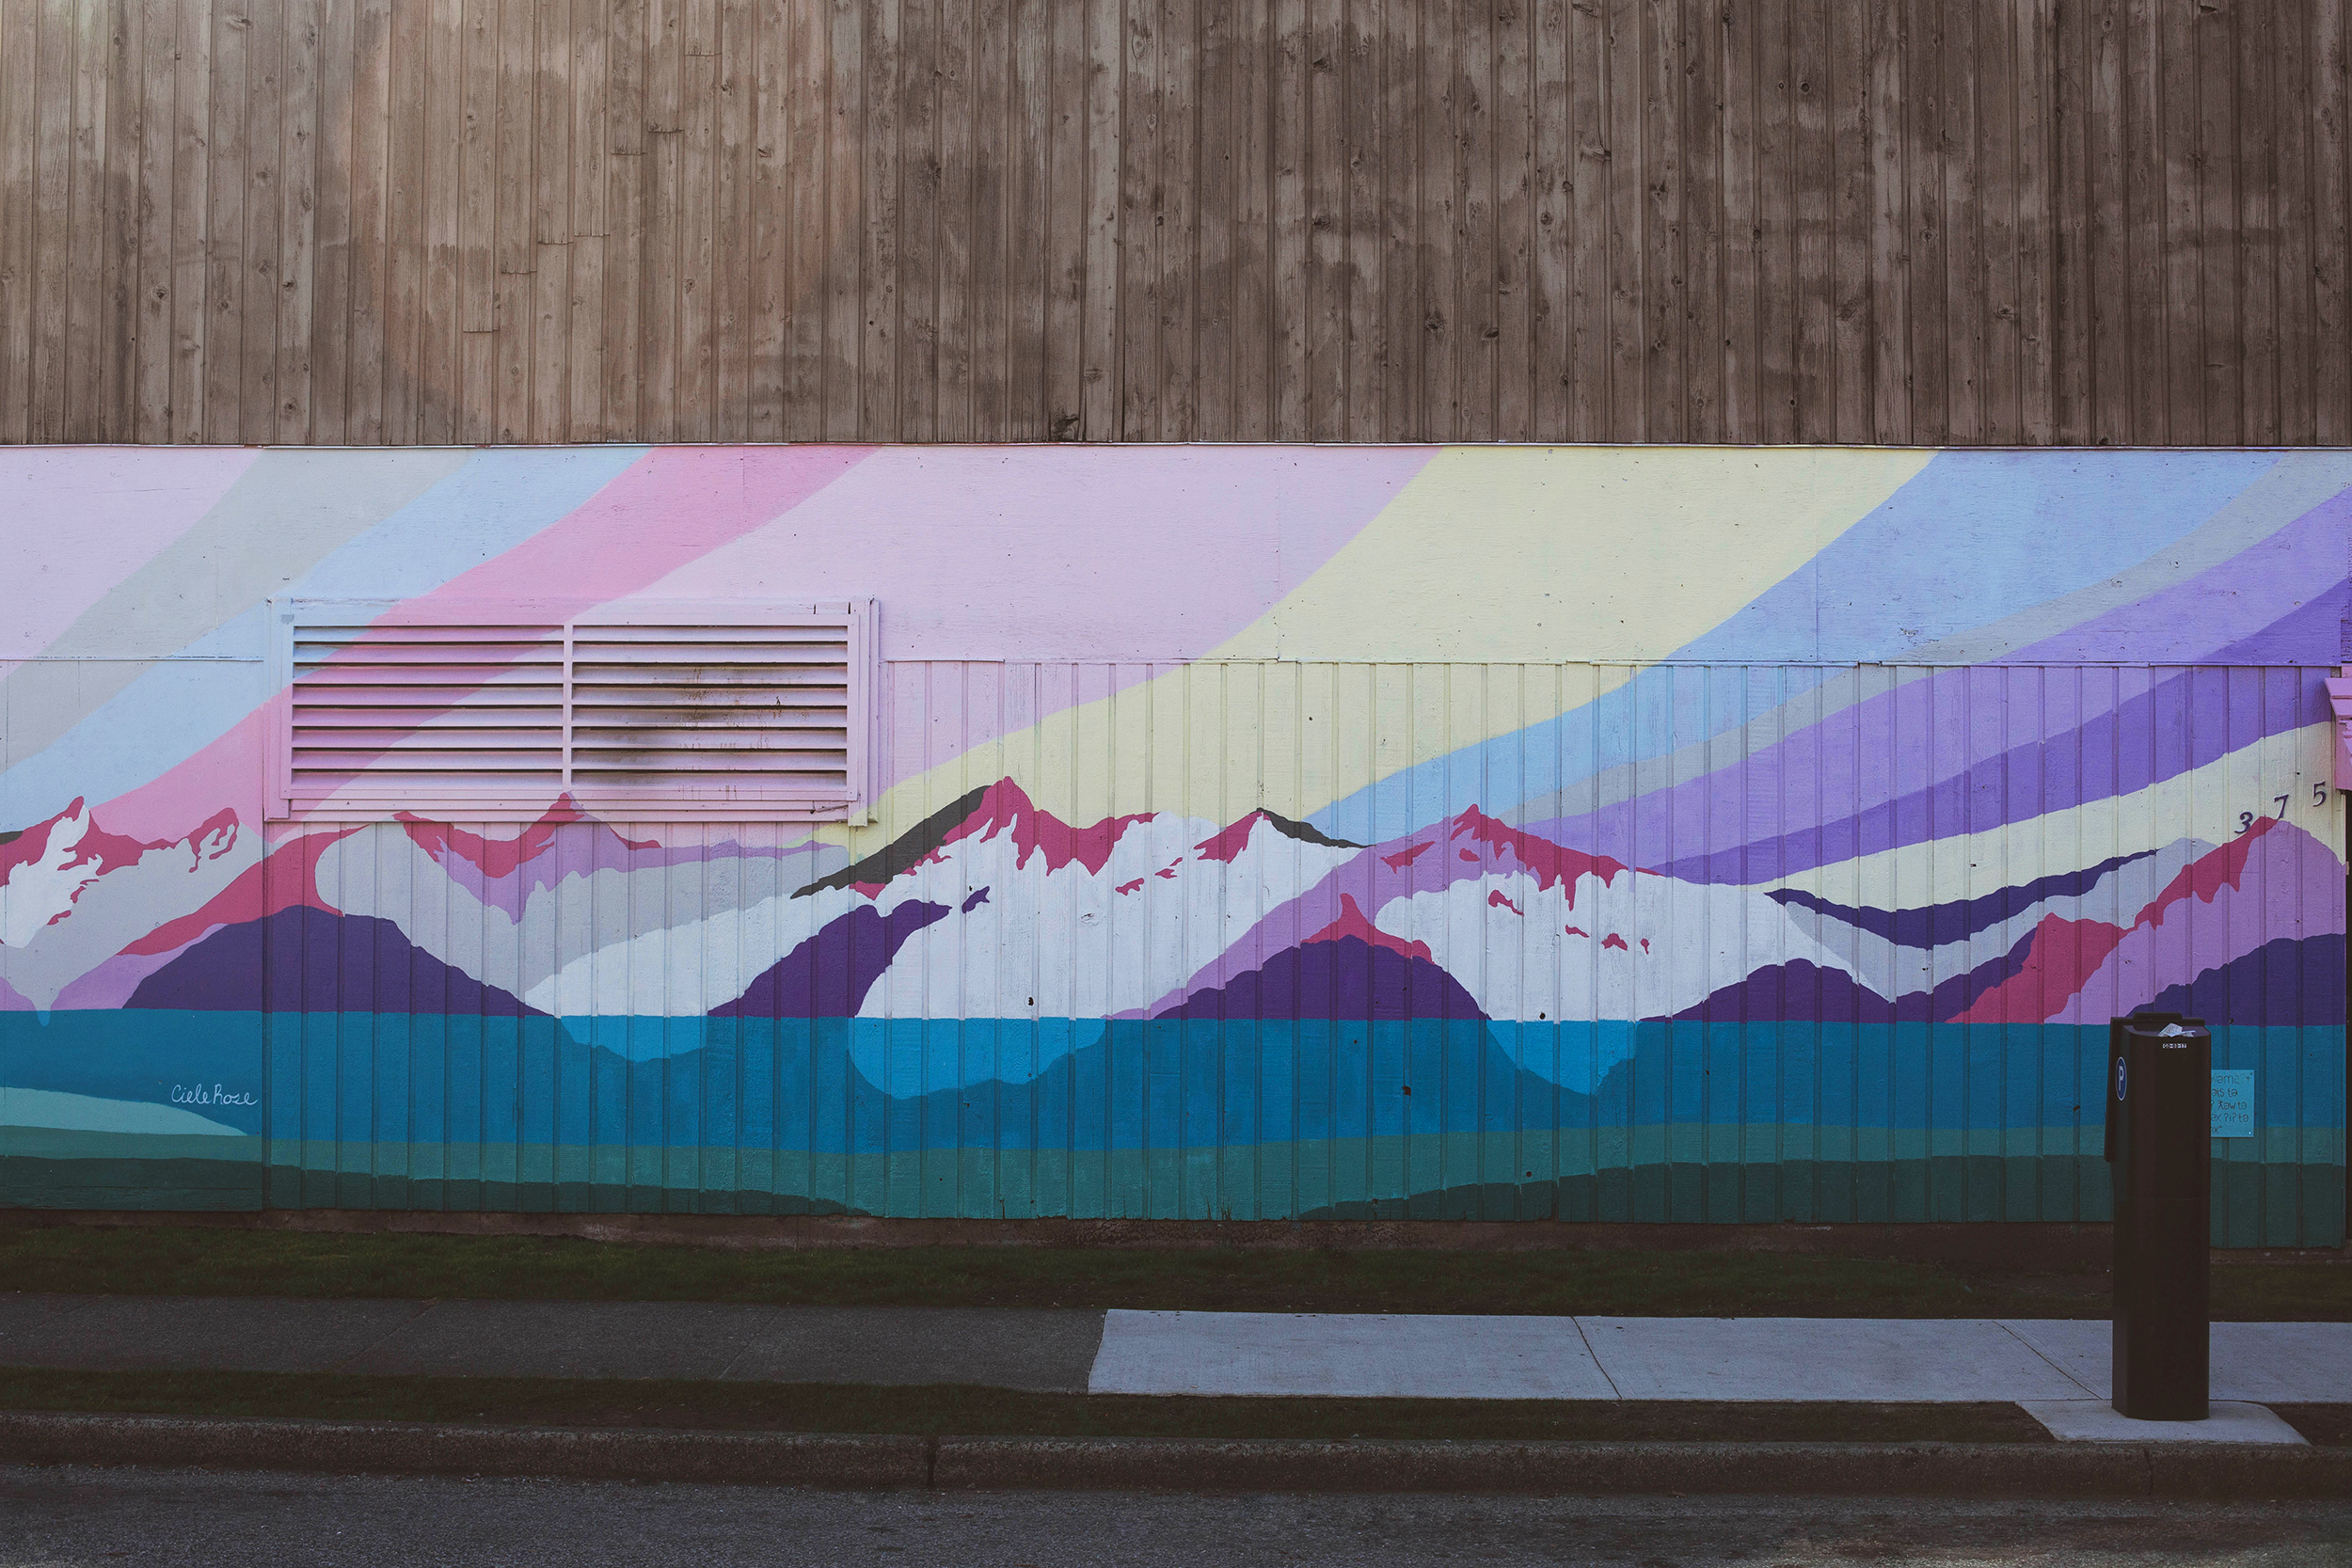 The mural wrapping the building is by local artist Ciele Rose.